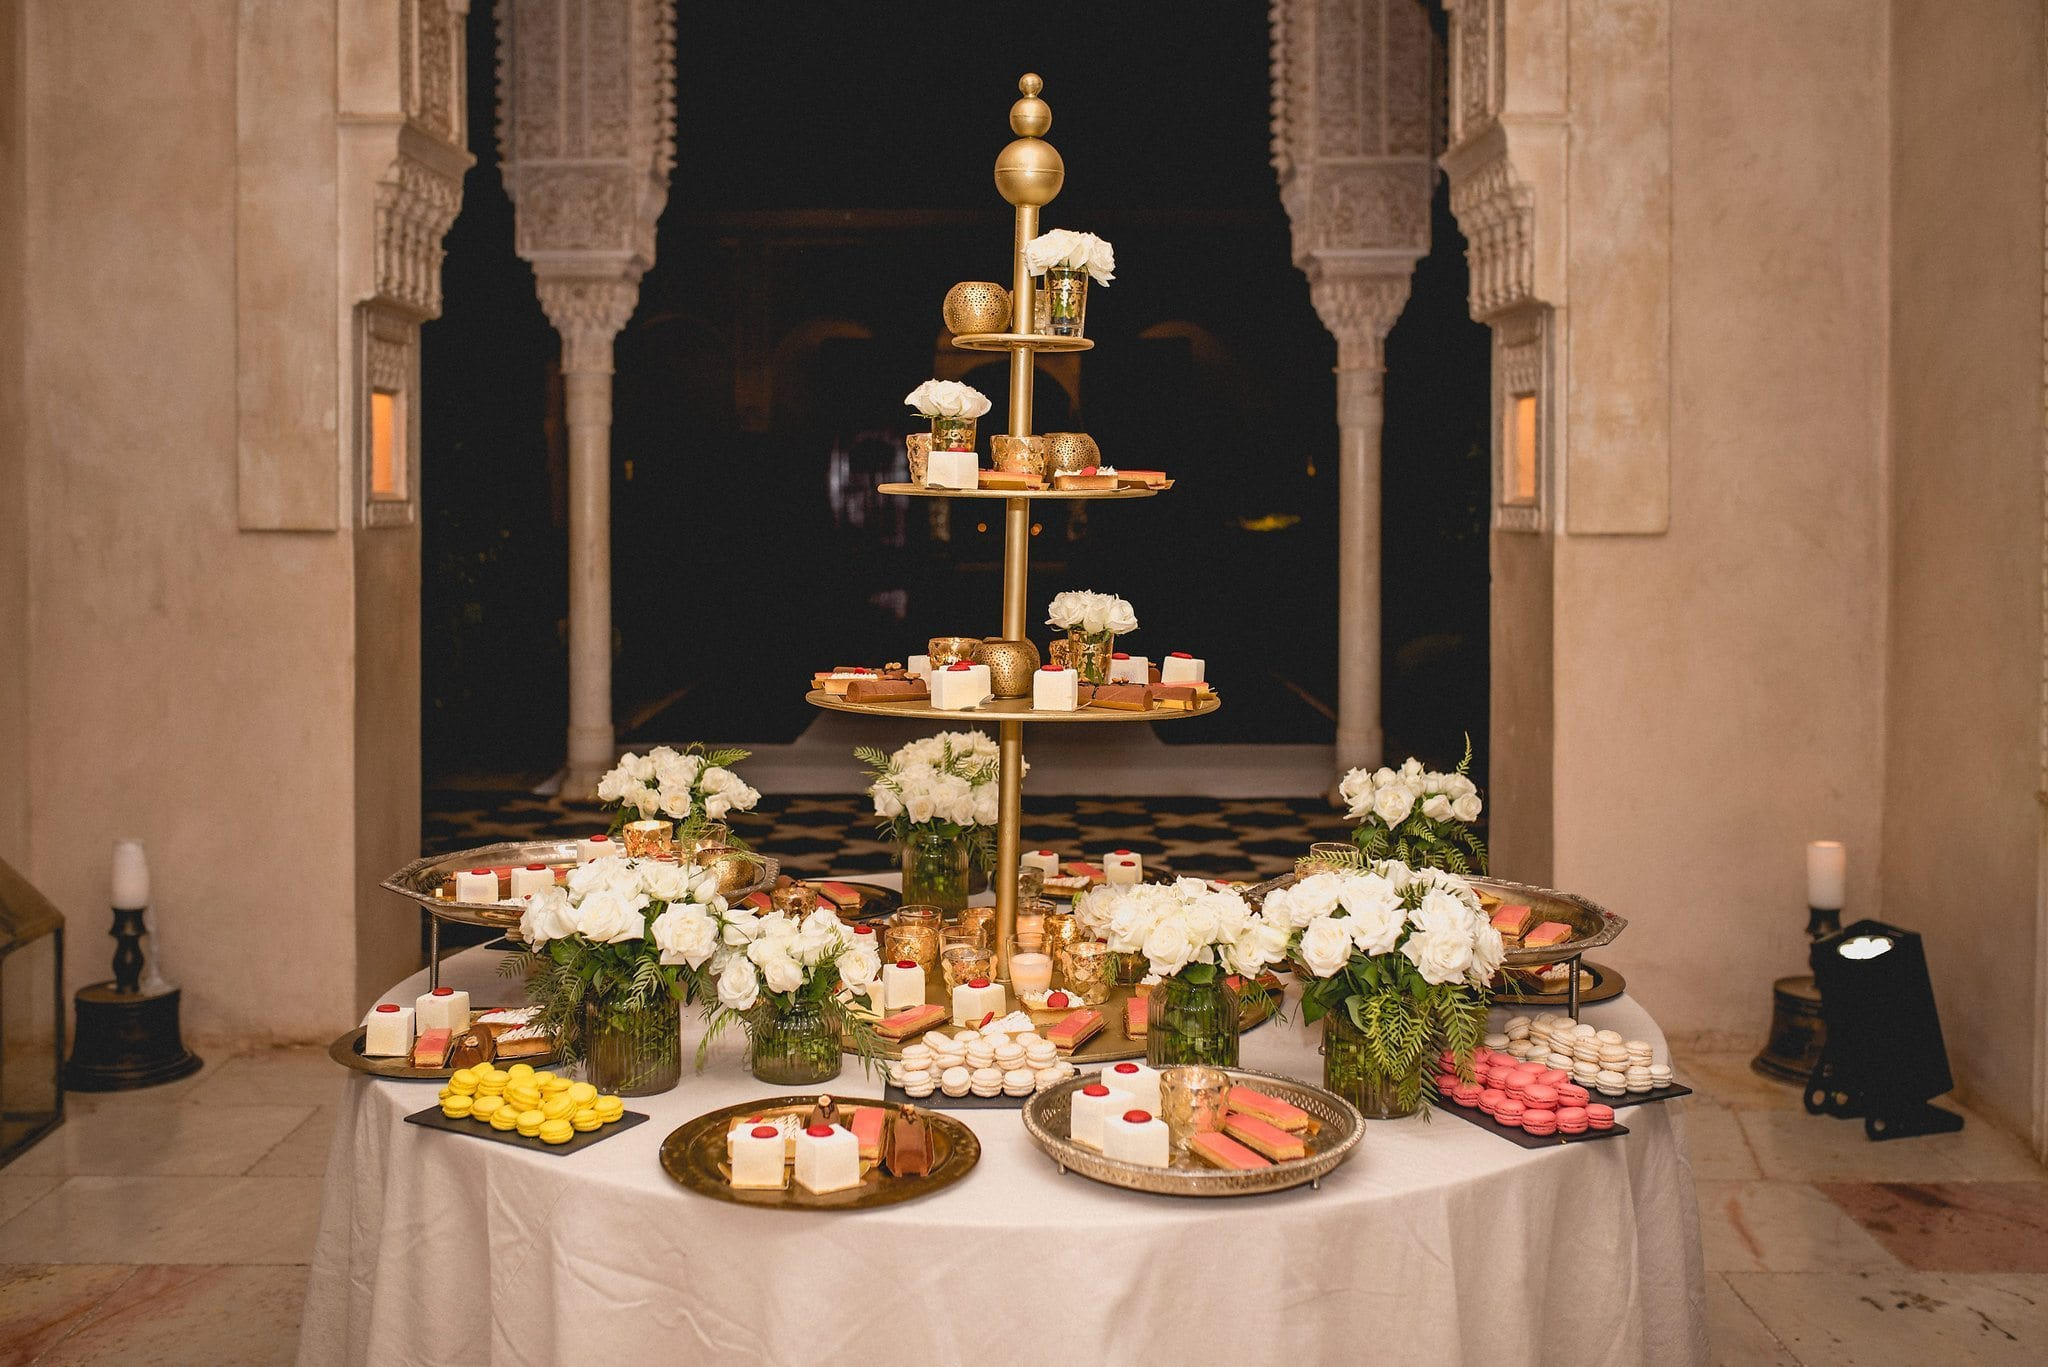 Moroccan Sweets on a wedding desert table at Ksar Char Bagh